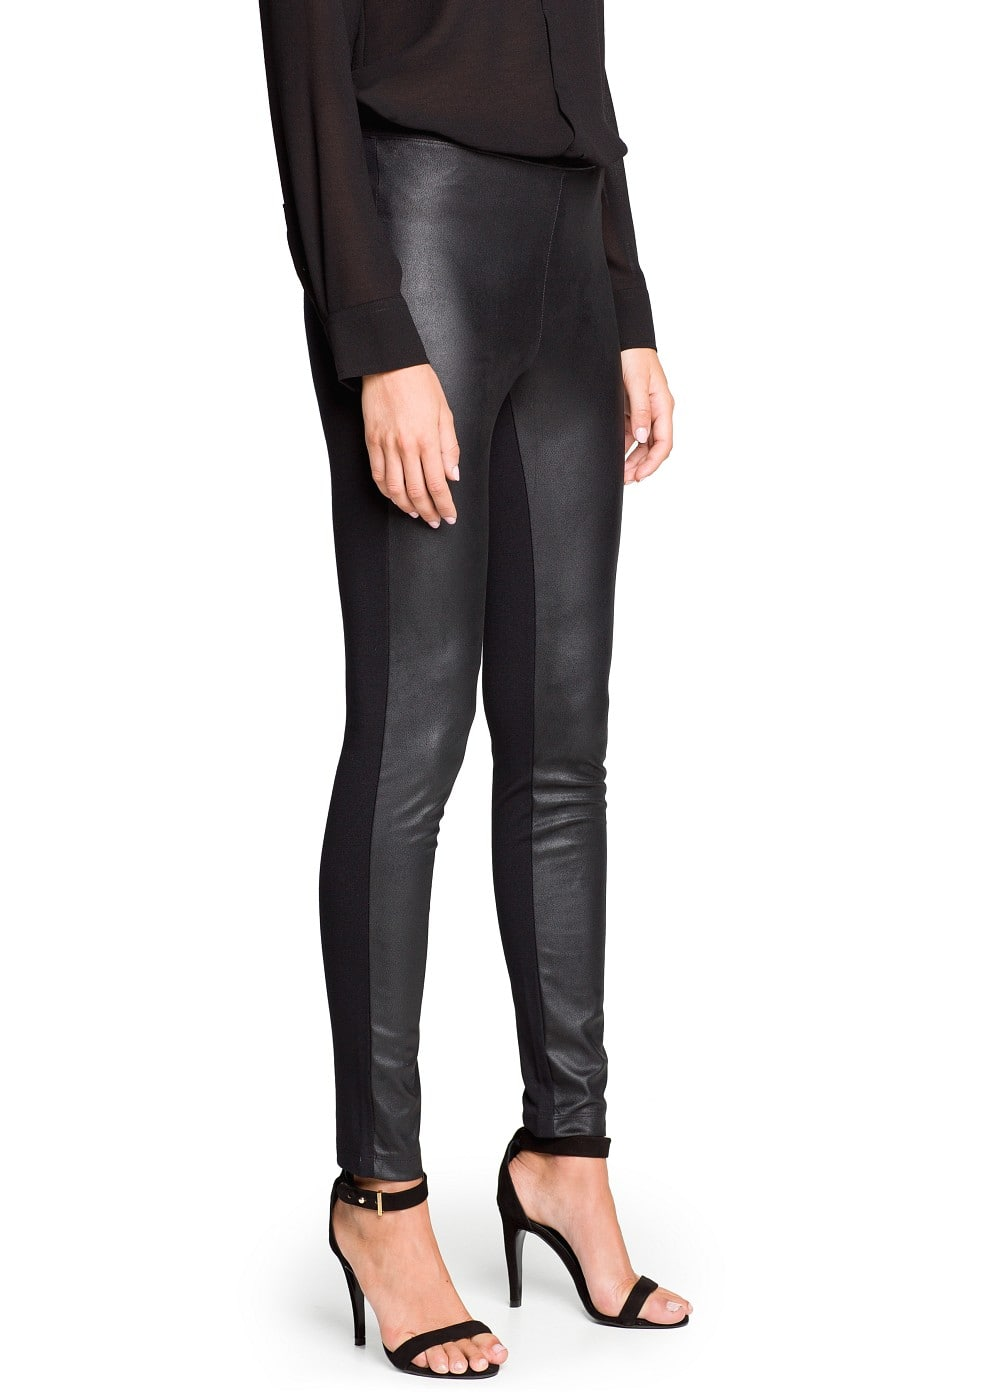 Glossy finish faux suede leggings